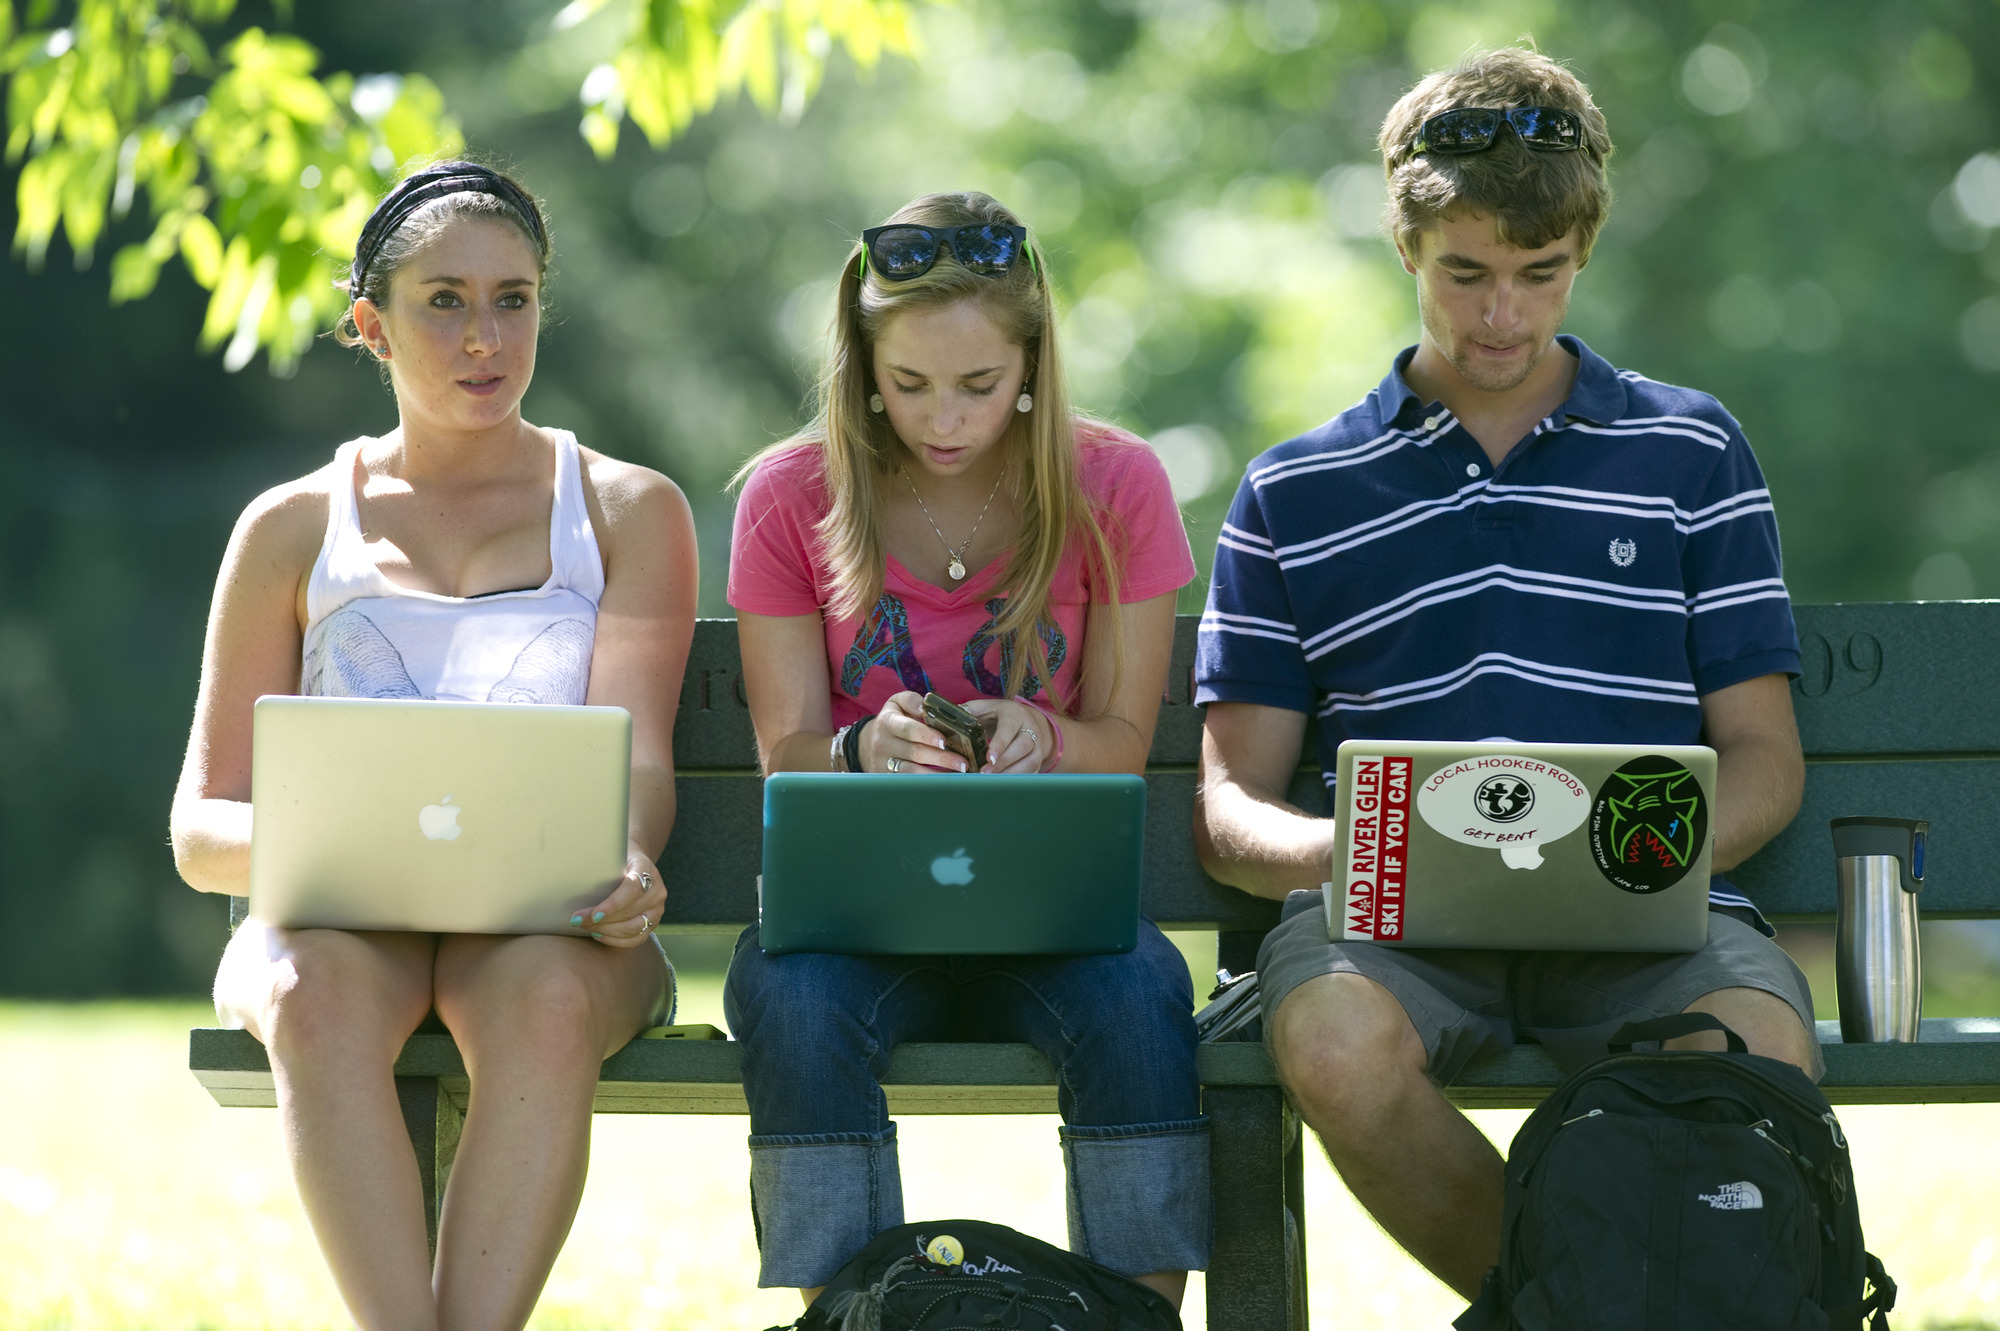 3 students on laptops outside